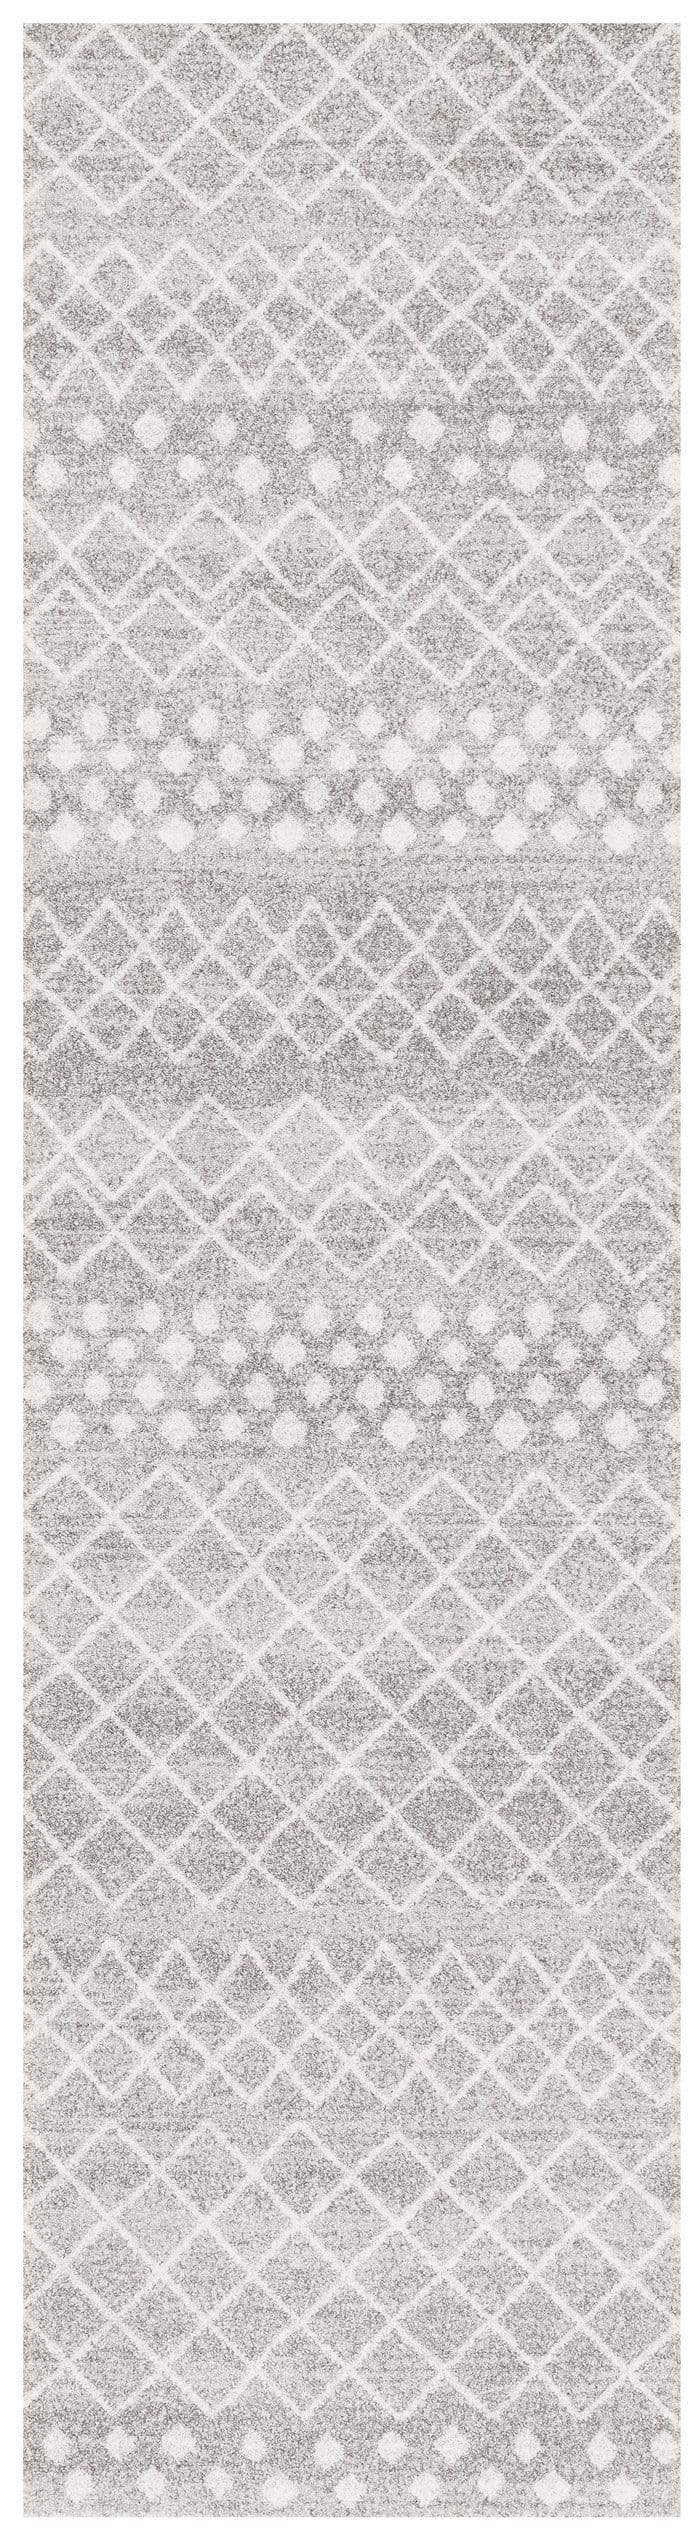 Rare Gem Apopa Grey & White Diamond Pattern Runner Rug